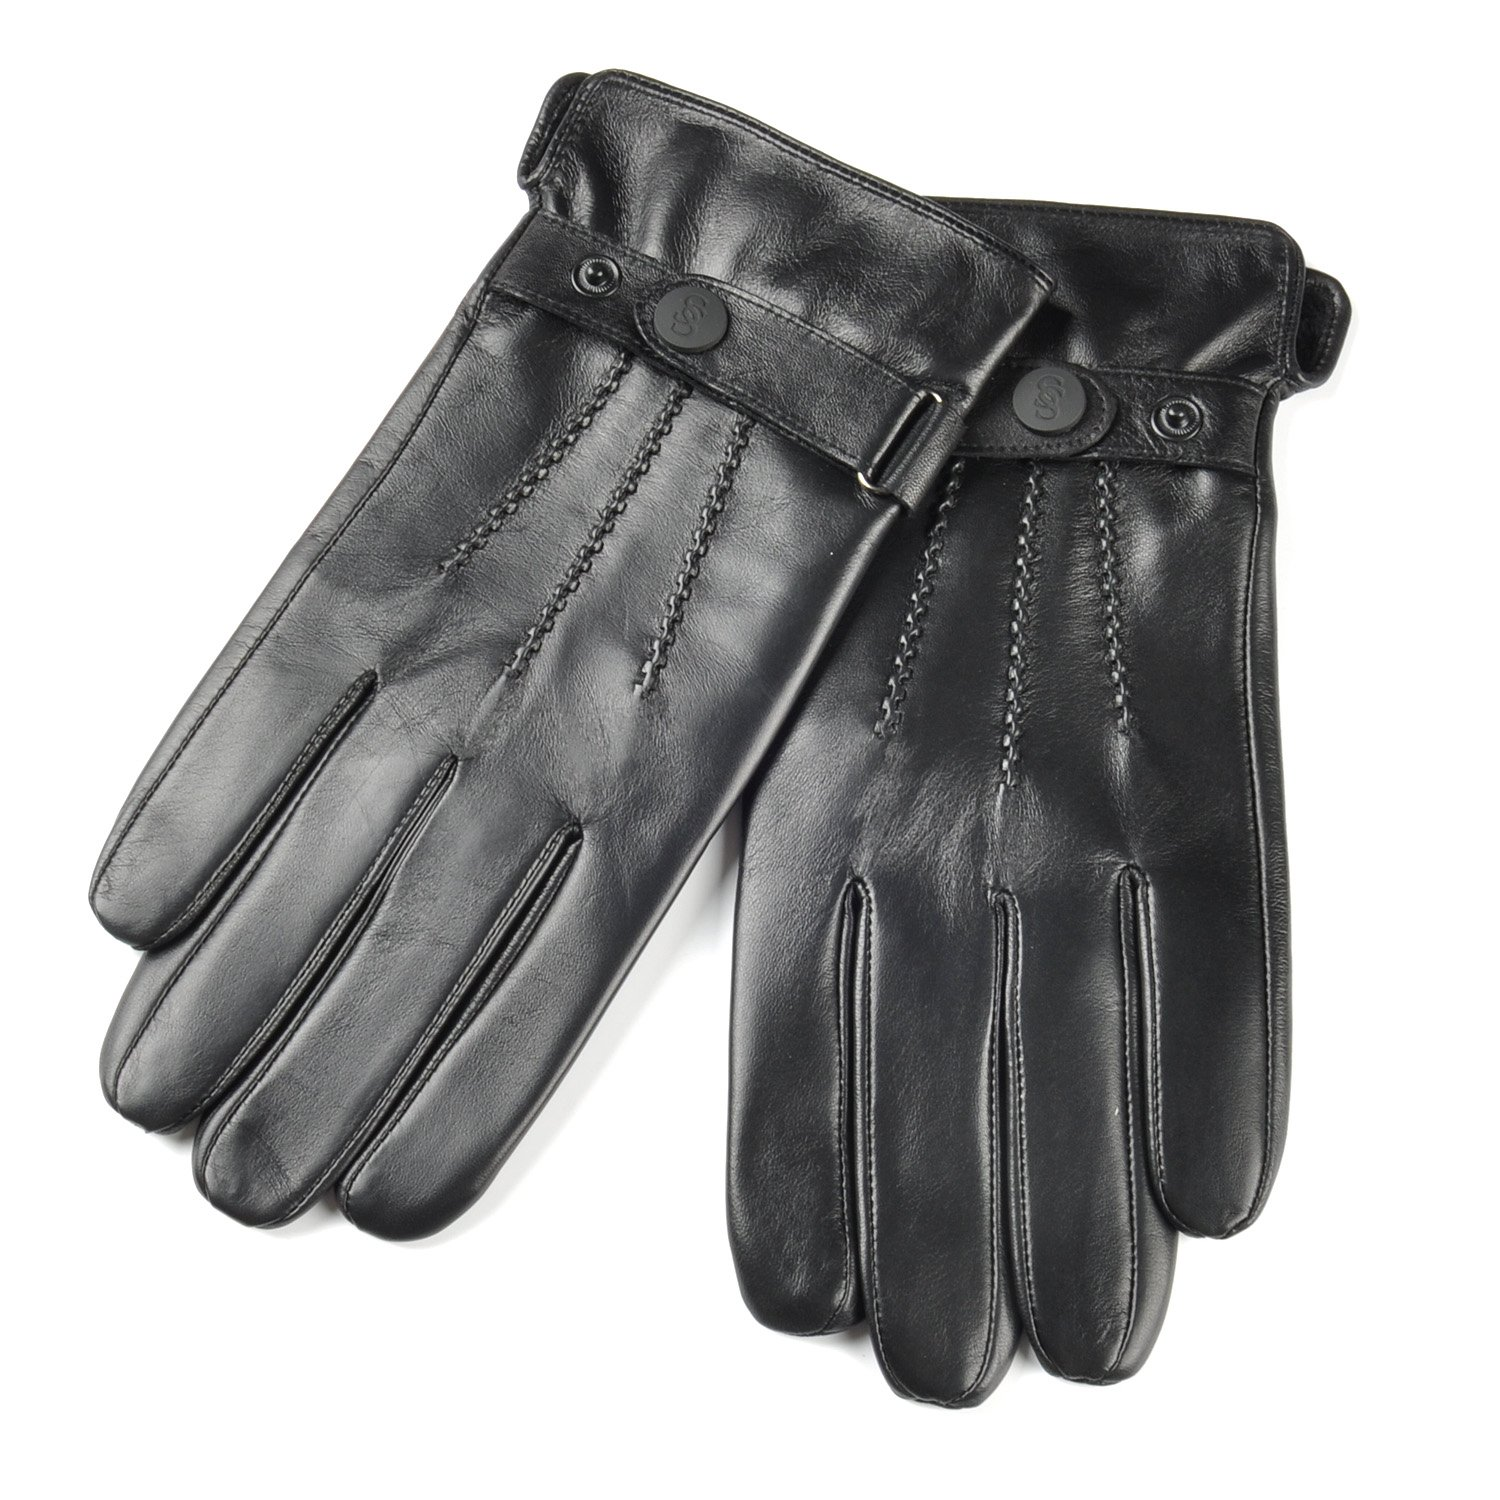 SIEFERSN Classic Style Men's Nappa Leather Gloves Full Touchscreen Warm Winter Driving Gloves 1164225004 (X-Large 9.5'', Black (Full Touchscreen/Soft flannel Lining))